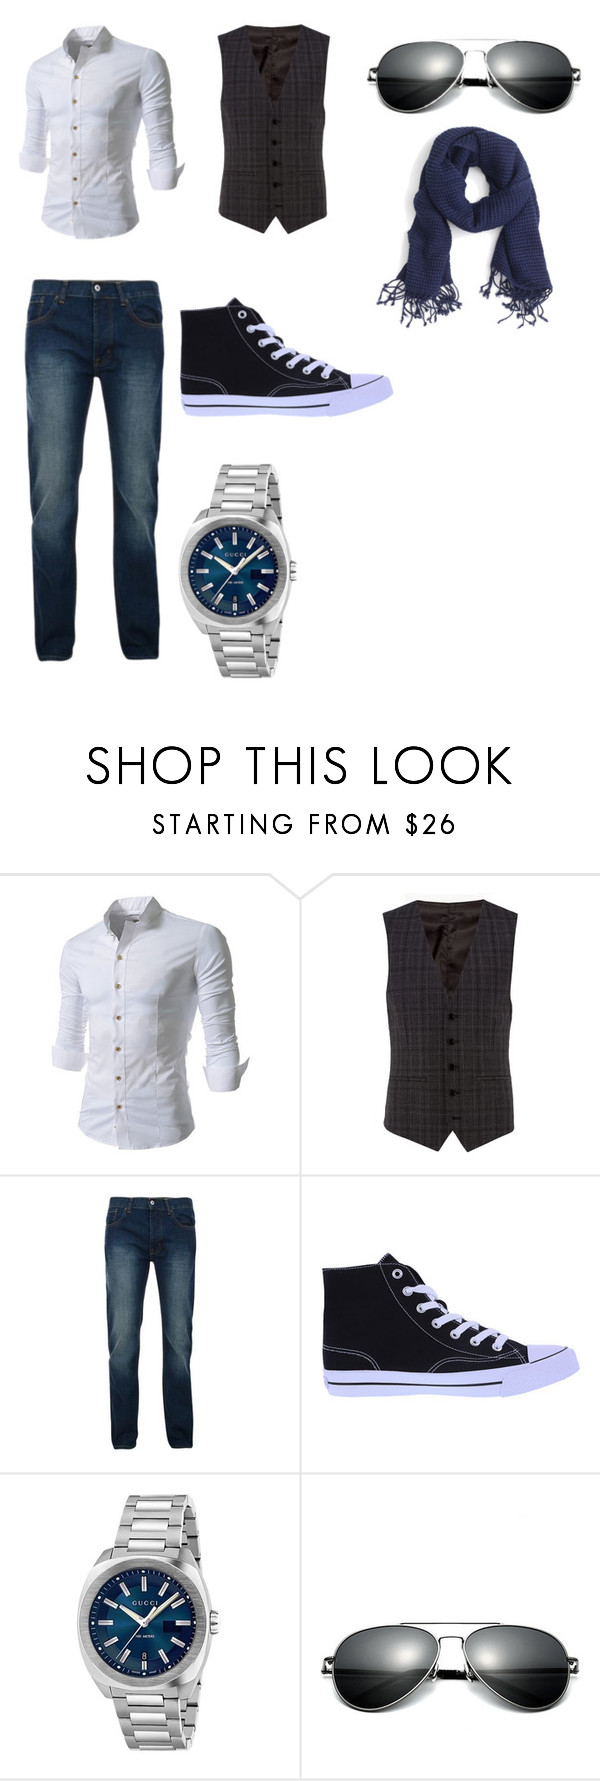 """""""Business Casual"""" by renee-pea on Polyvore featuring Kenneth Cole, Bellfield, Gucci, J.Crew, men's fashion and menswear"""